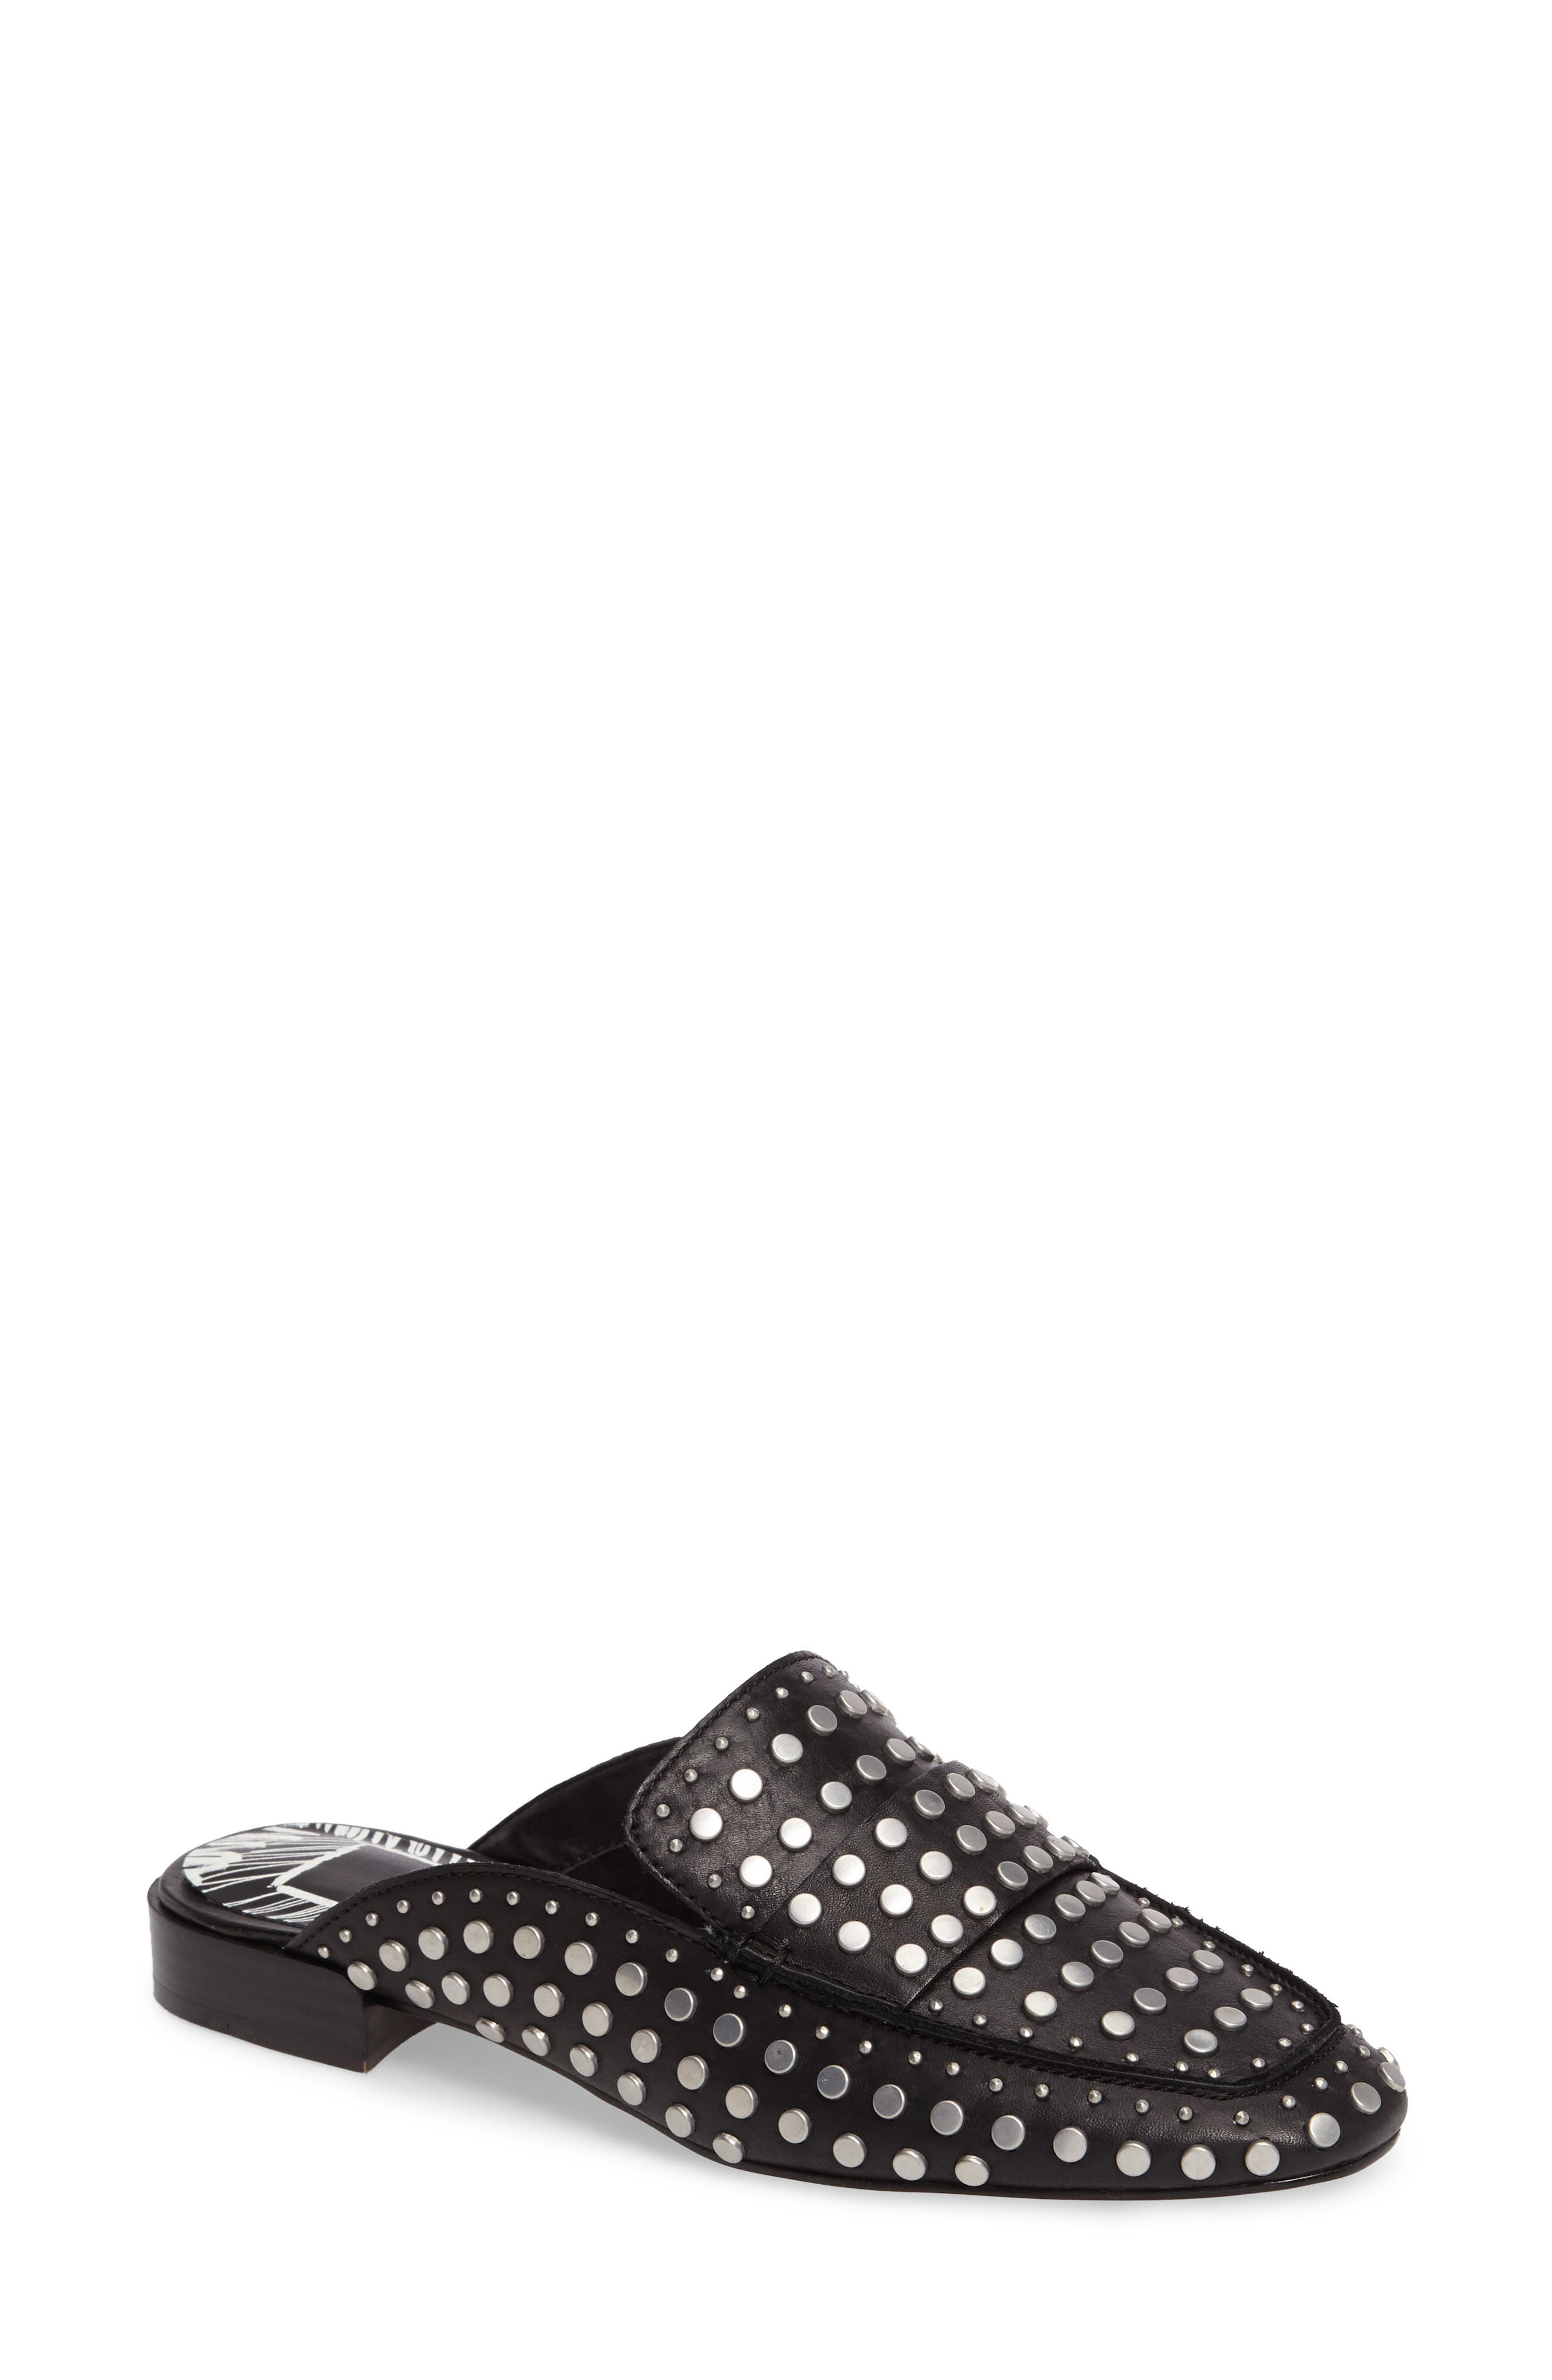 Maura Studded Mule,                         Main,                         color, 001